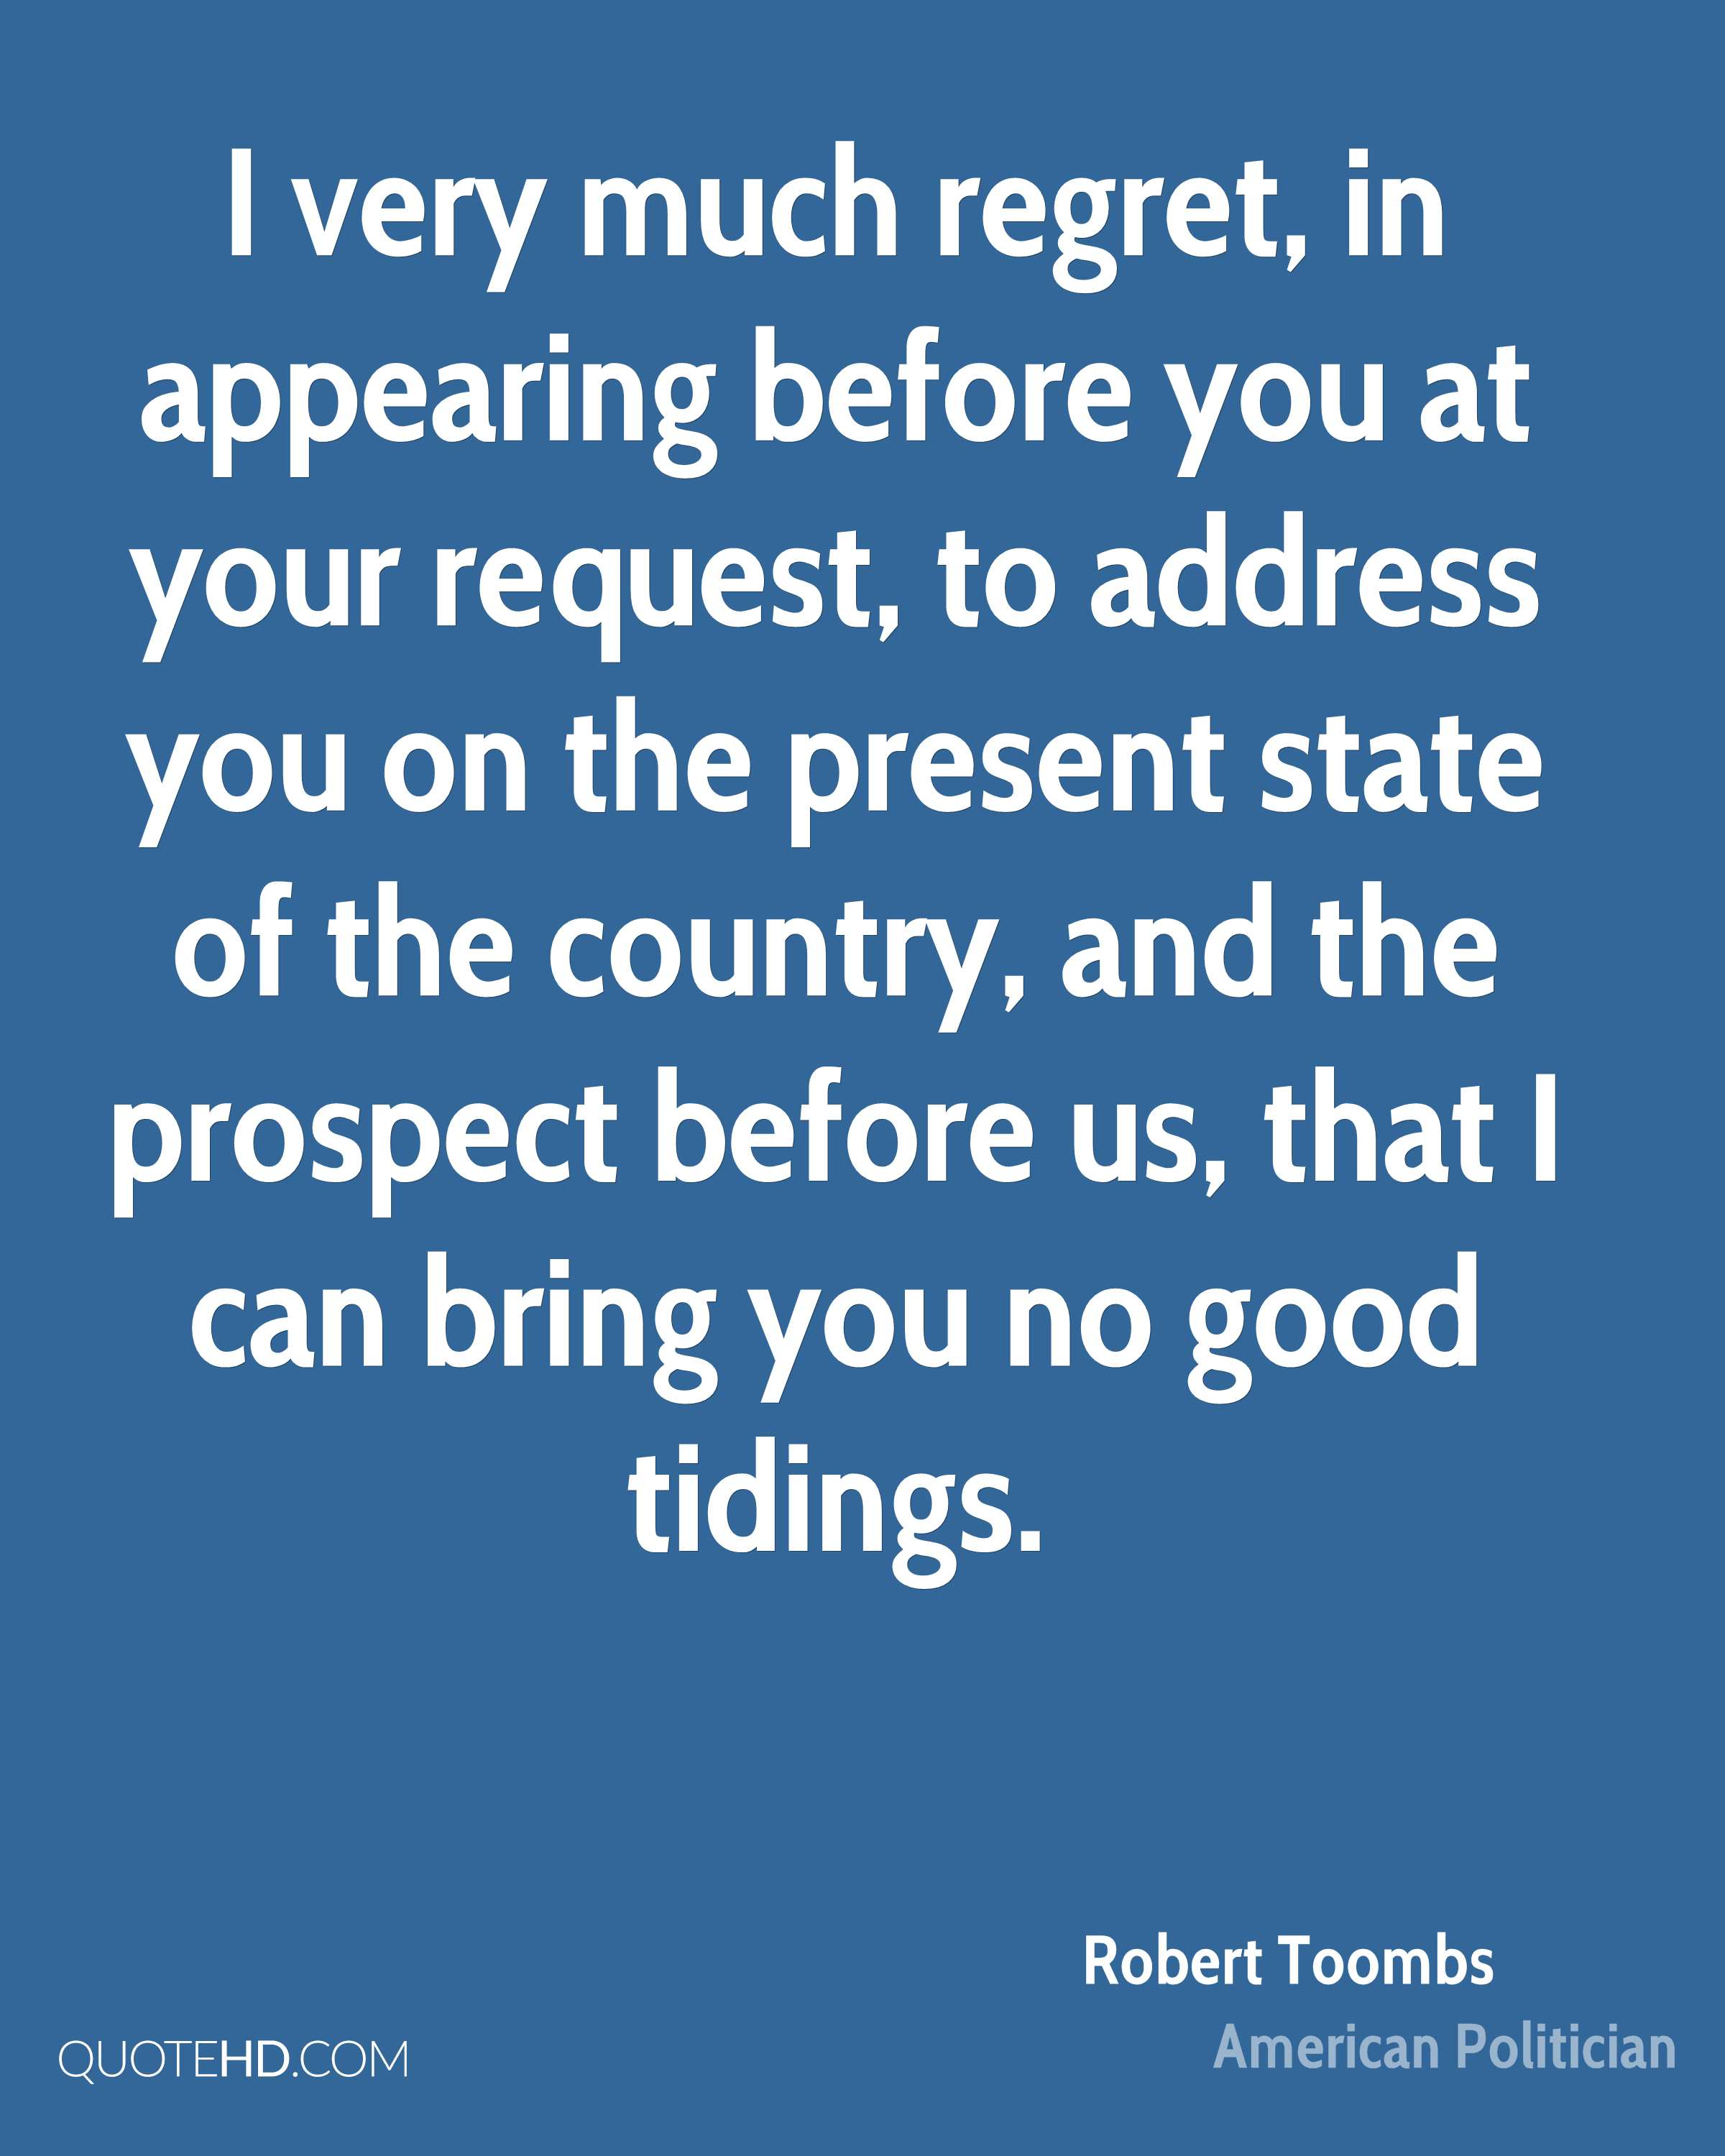 I very much regret, in appearing before you at your request, to address you on the present state of the country, and the prospect before us, that I can bring you no good tidings.